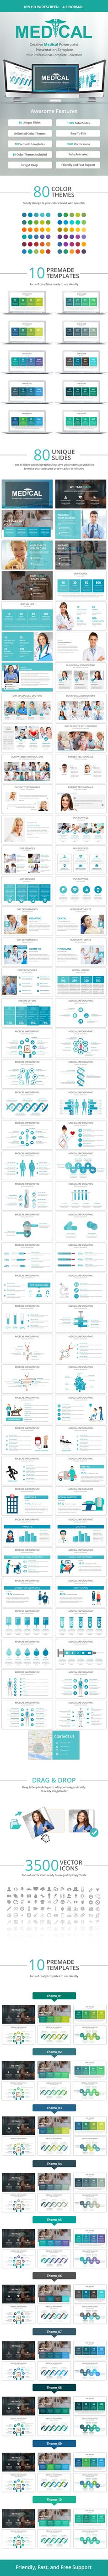 Medical PowerPoint Presentation Template - Creative #PowerPoint #Templates